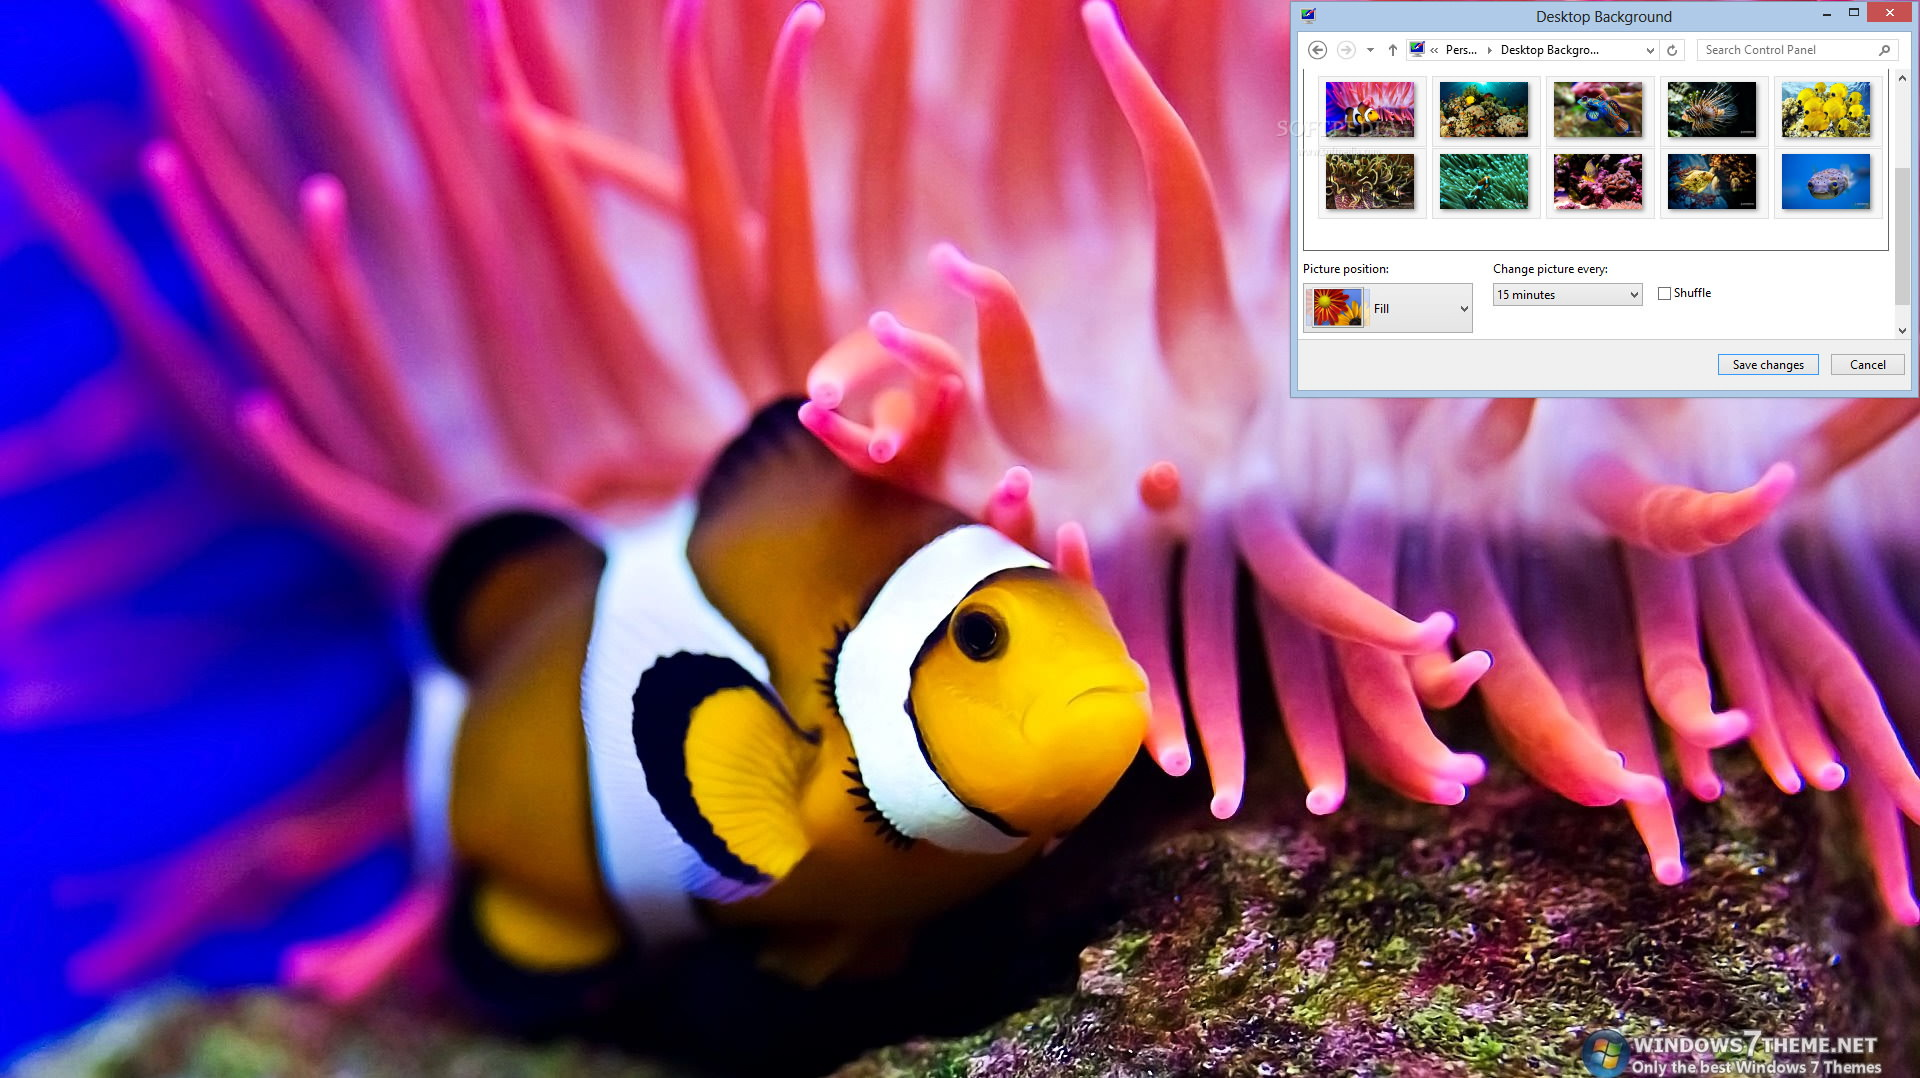 Coral Fish Windows 7 Theme